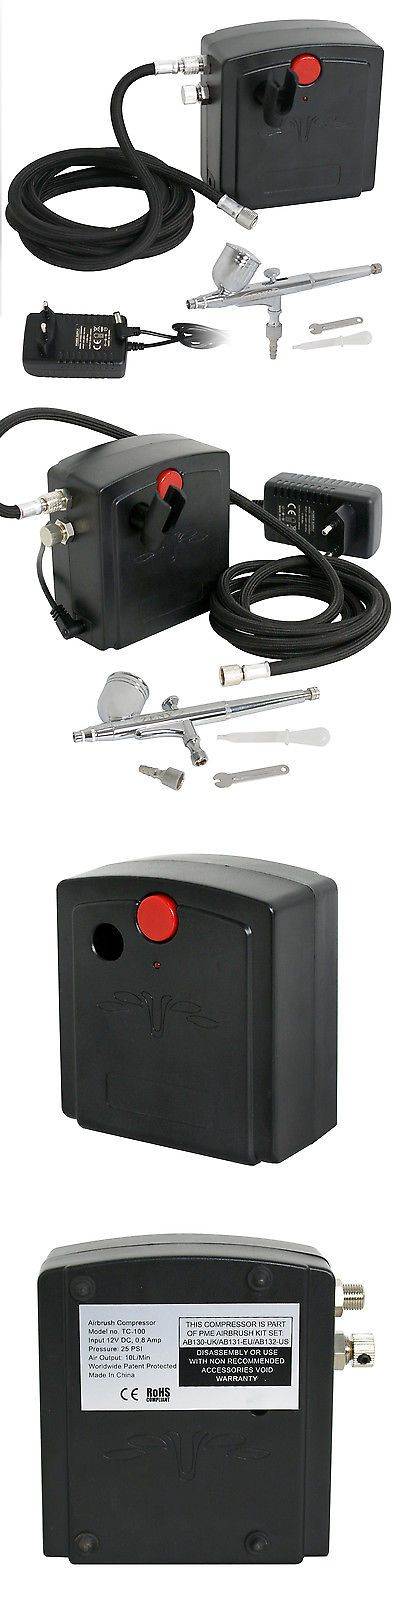 Systems and Sets 183095: Airbrush Compressor Kit Dual Action Spray Air Compressor Painting Hobby Nail Art -> BUY IT NOW ONLY: $34.99 on eBay!